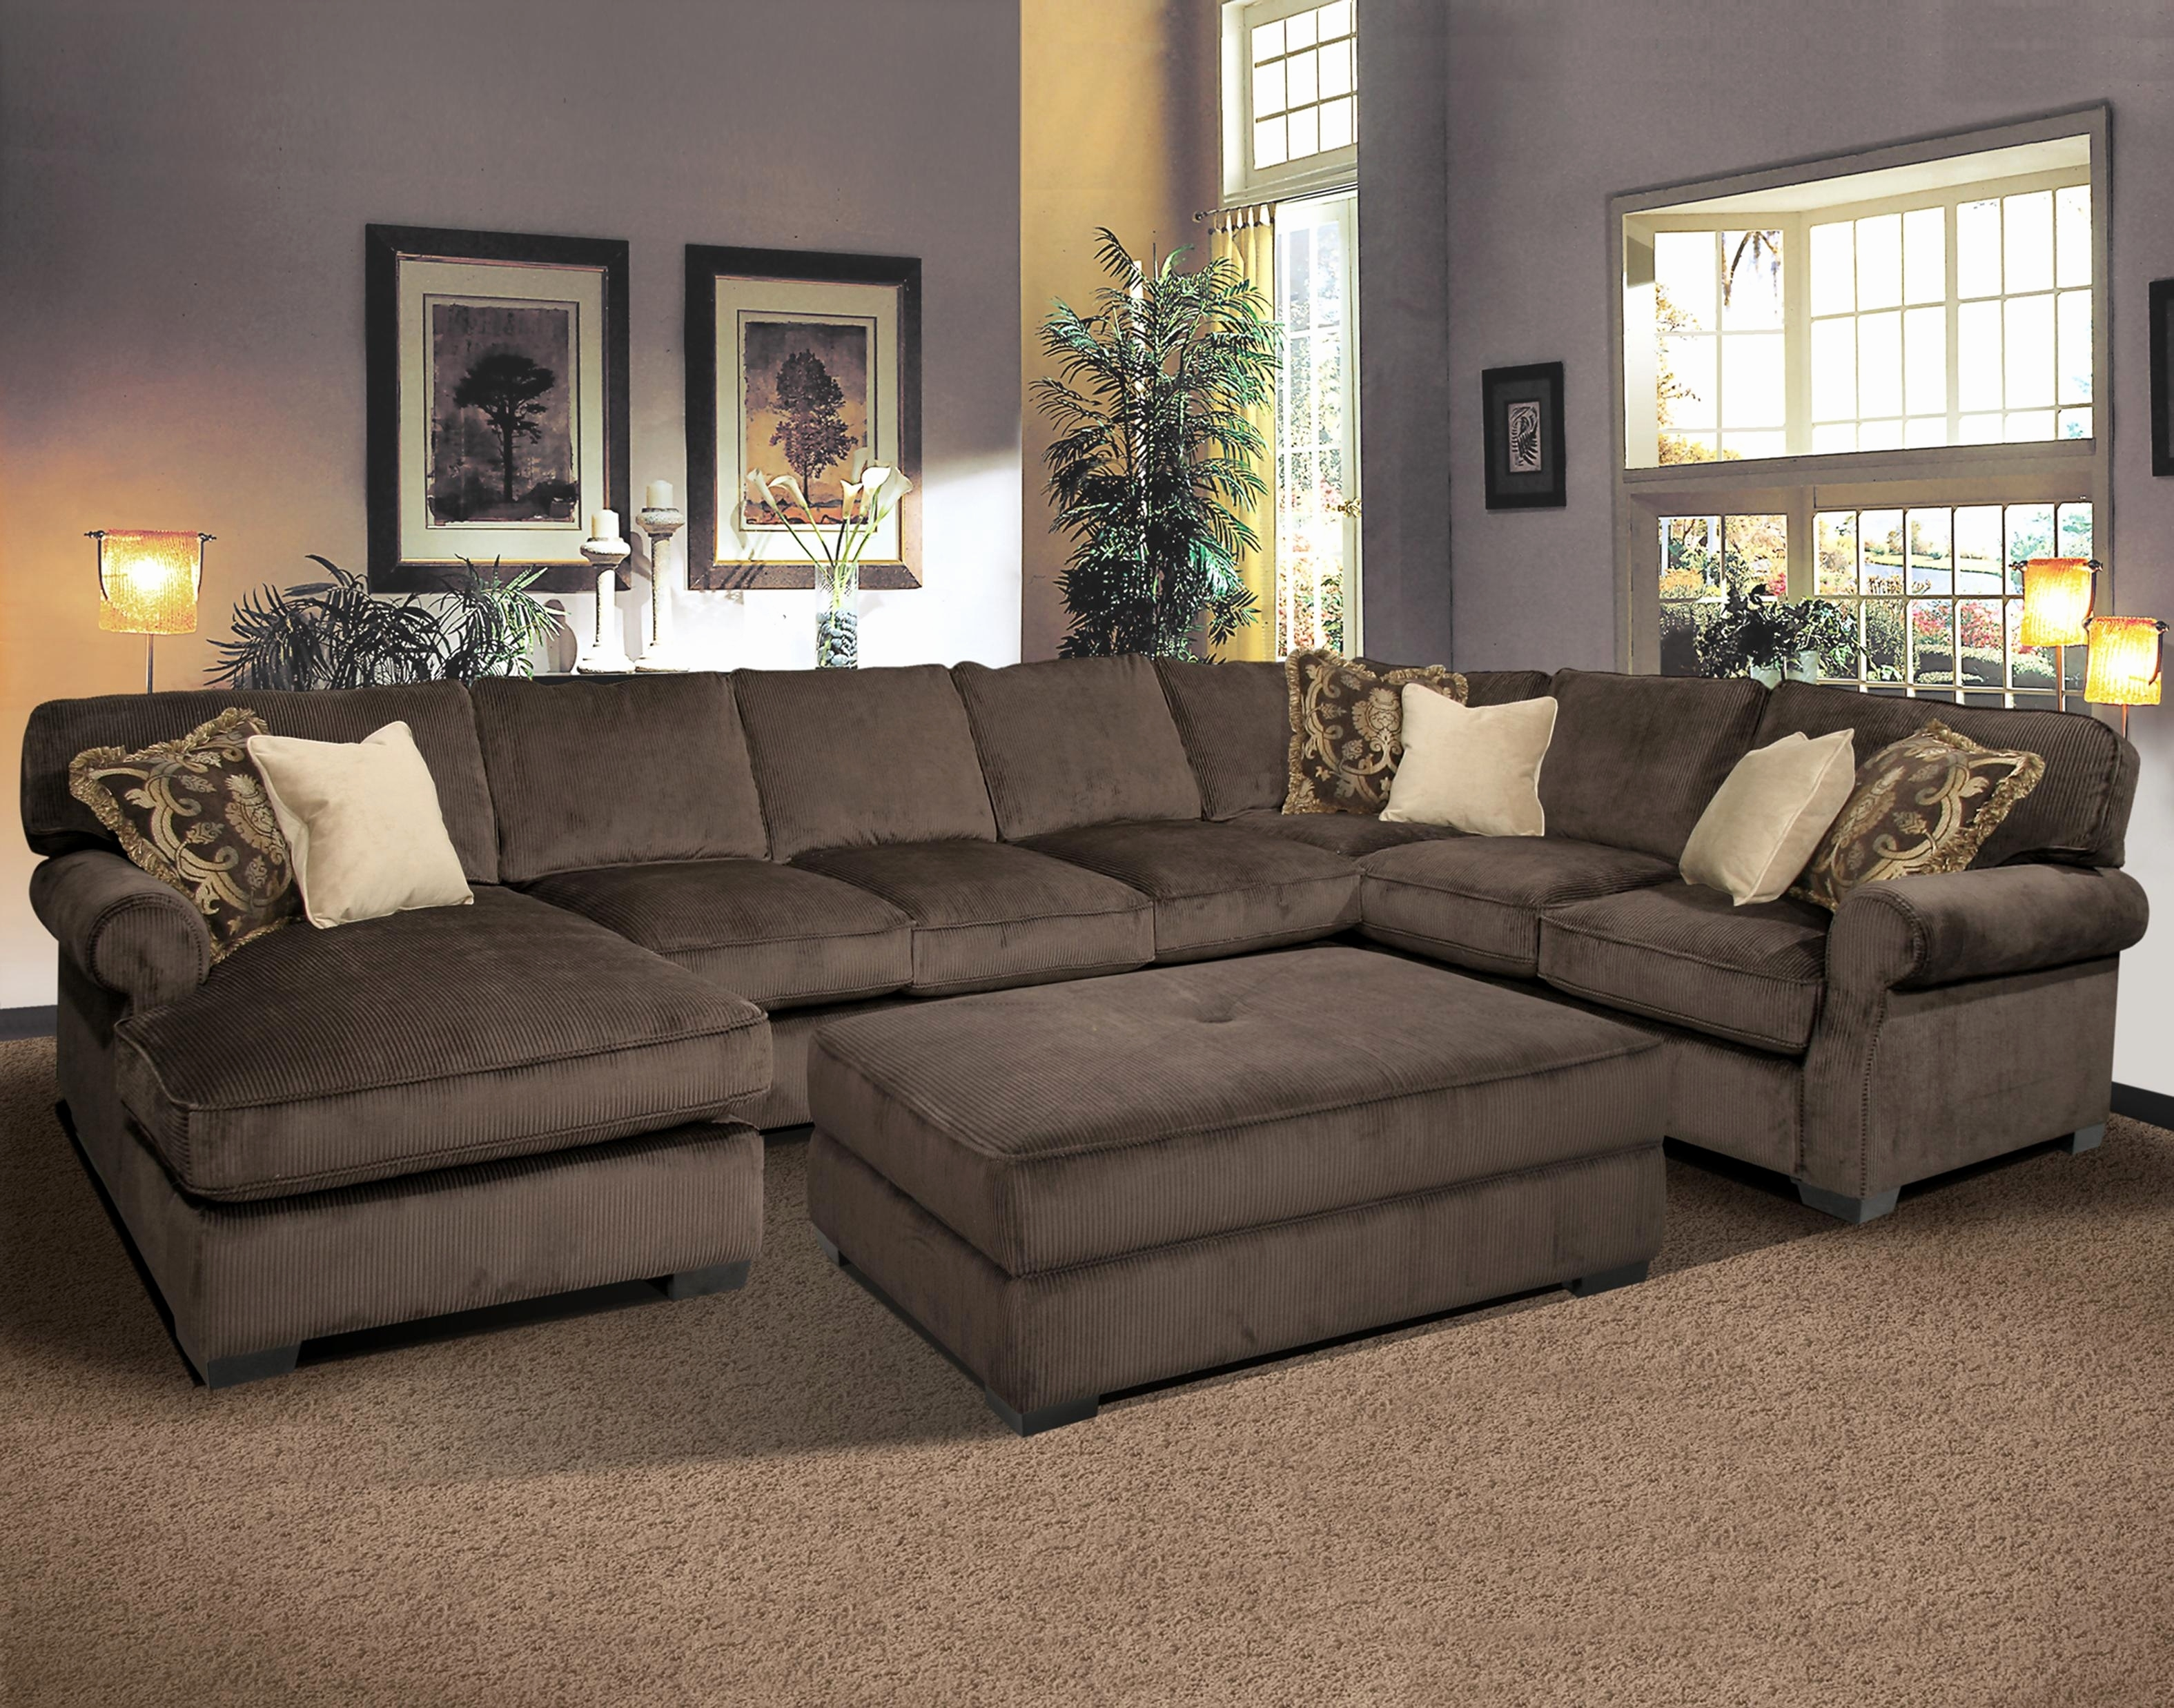 Living Room Furniture Canada Unique Modular Sectional Sofas Canada With Sectional Sofas In Canada (View 3 of 10)